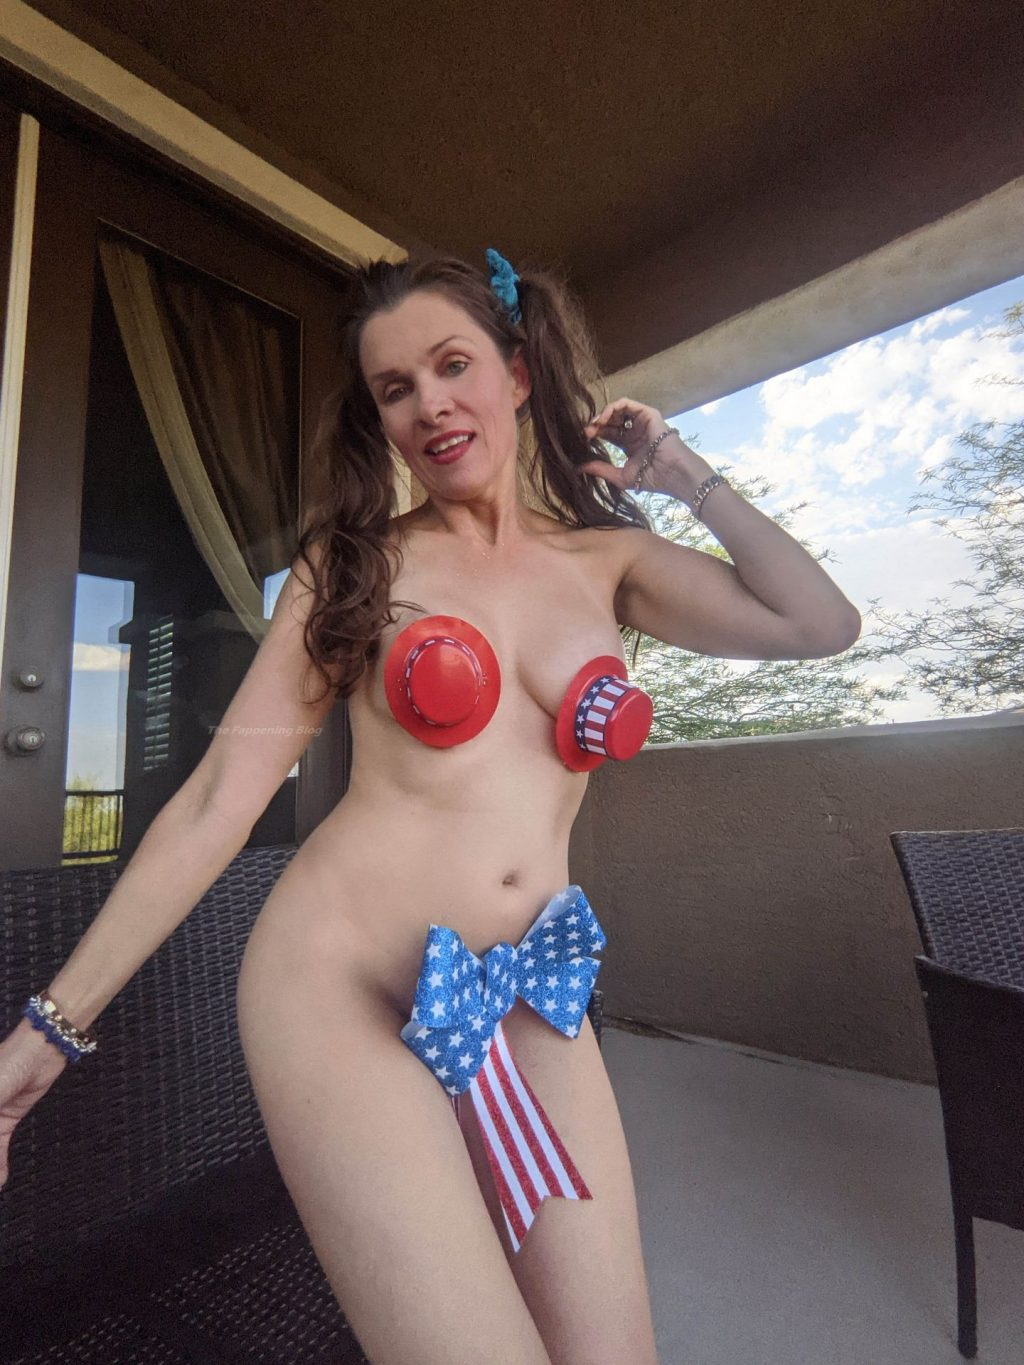 Alicia Arden Posts Some Risque And Bizarre 4th Of July Stuff For Her Fans (21 Photos)